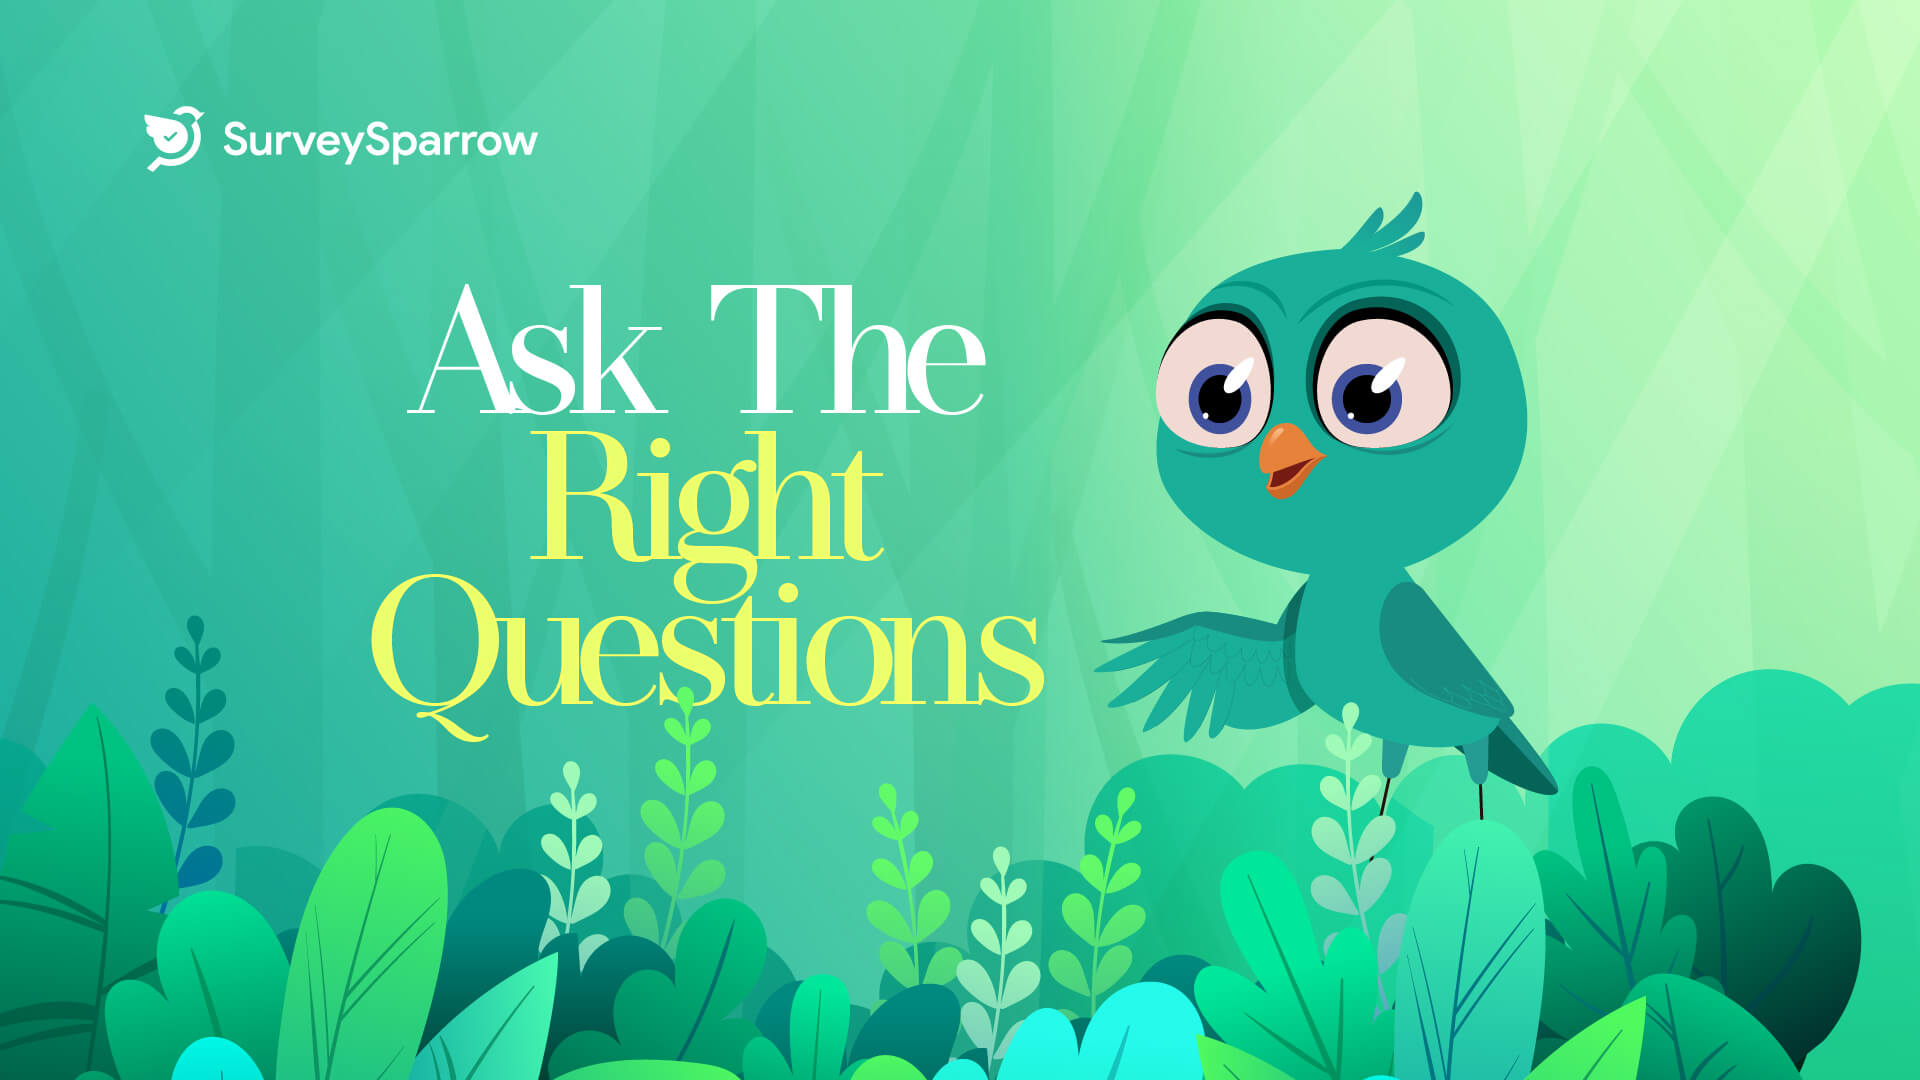 Ask The Right Questions with SurveySparrow